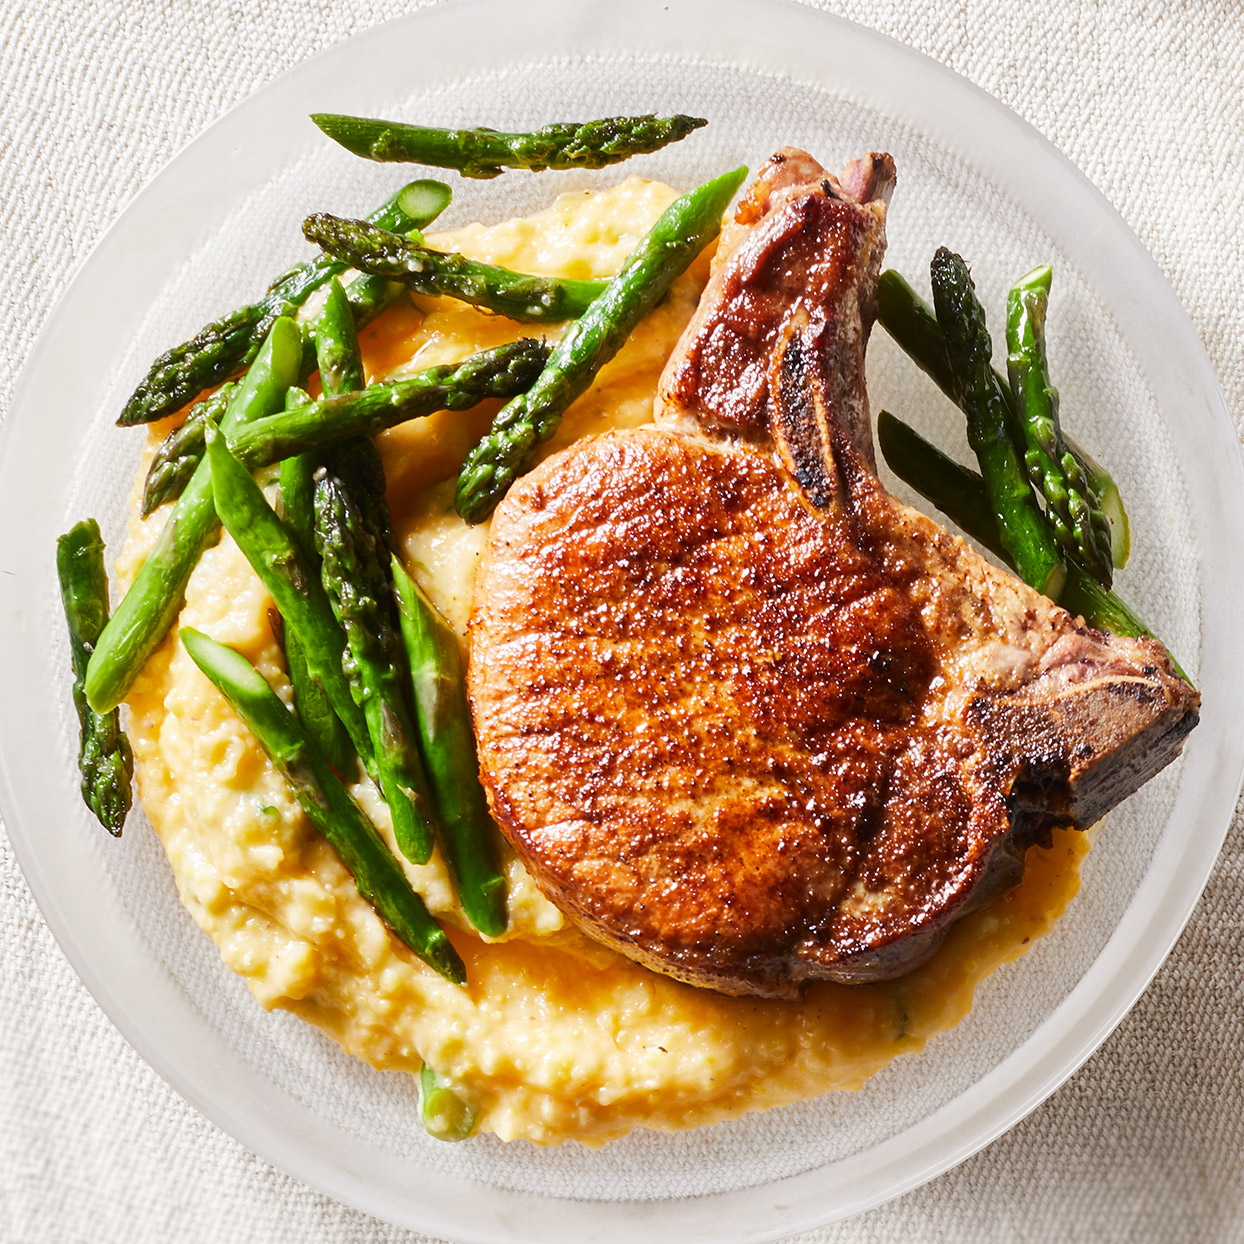 Cajun Skillet Pork Chops with Asparagus & Cheesy Polenta